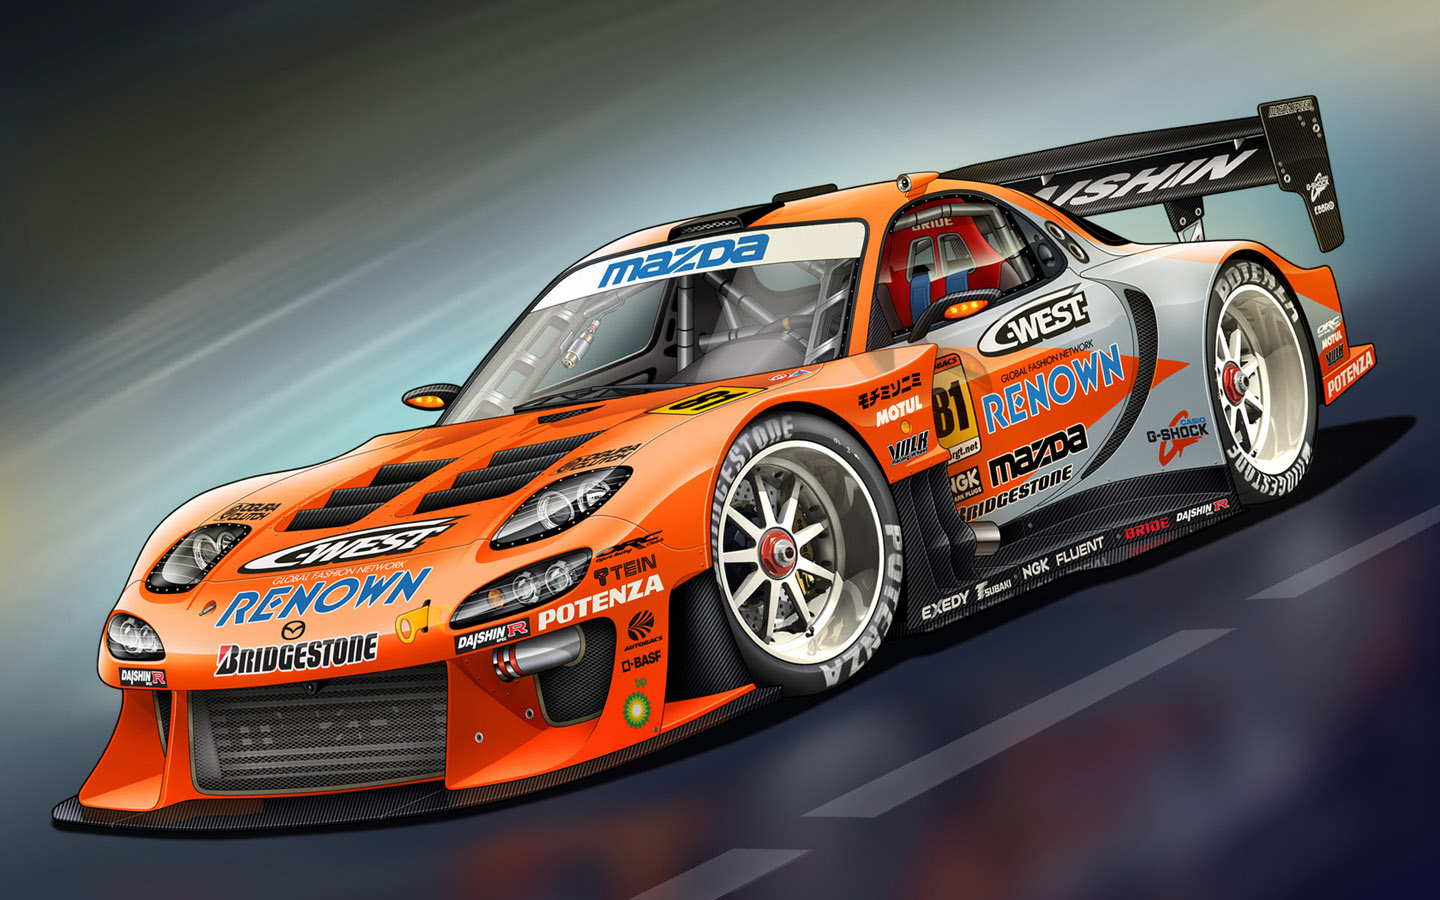 Hd Car wallpapers Sport cars wallpapers 2011 1440x900